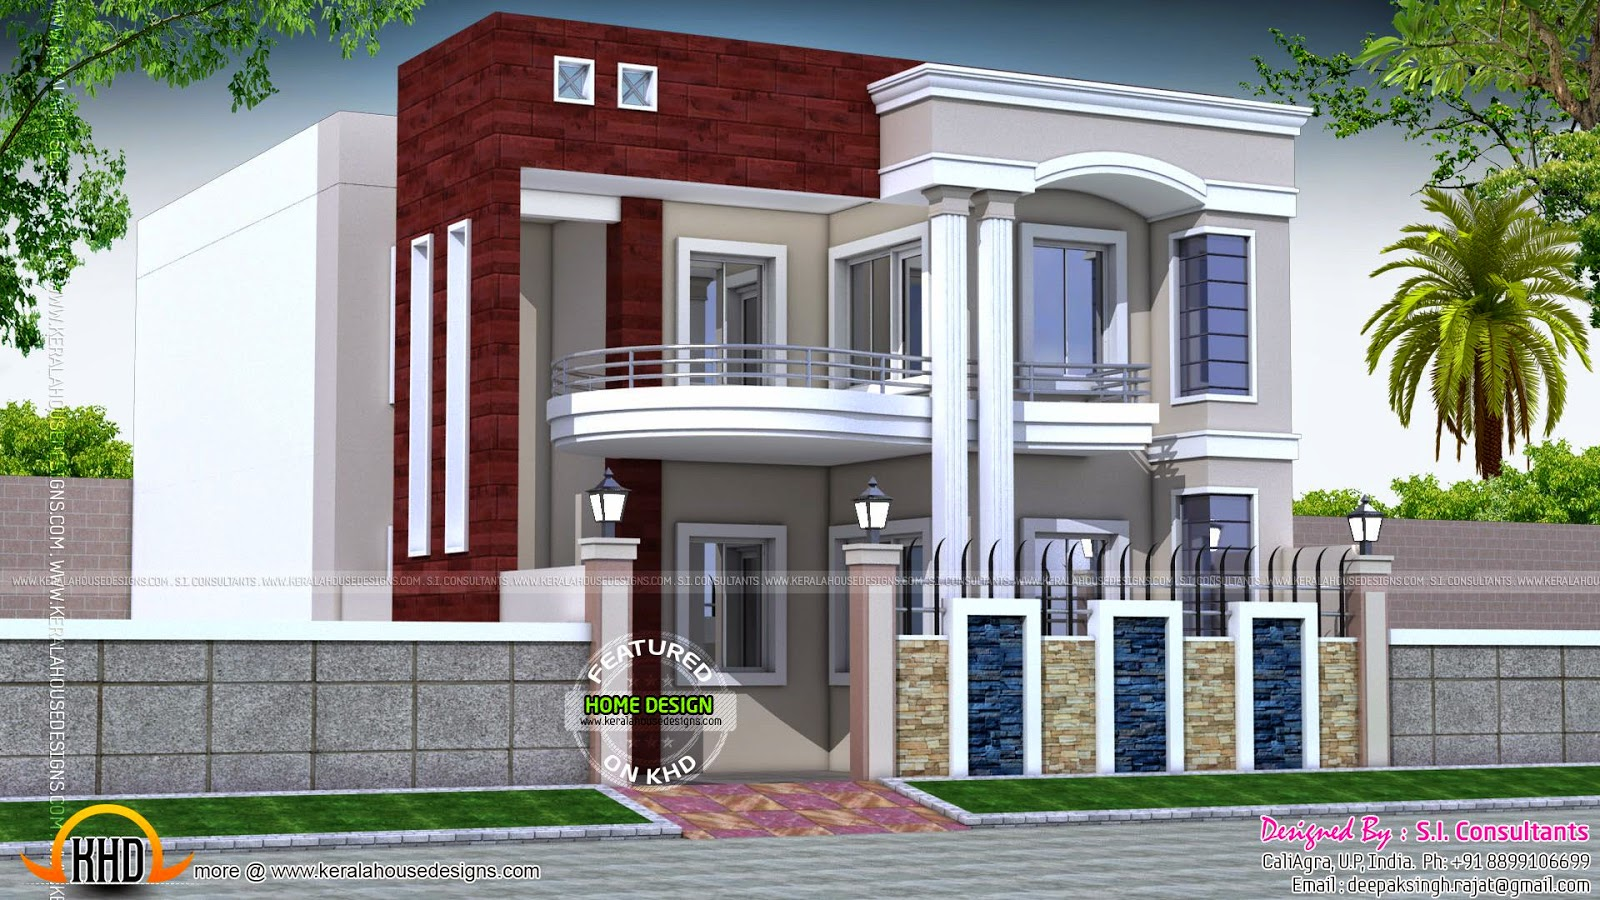 November 2014 kerala home design and floor plans Indian home design